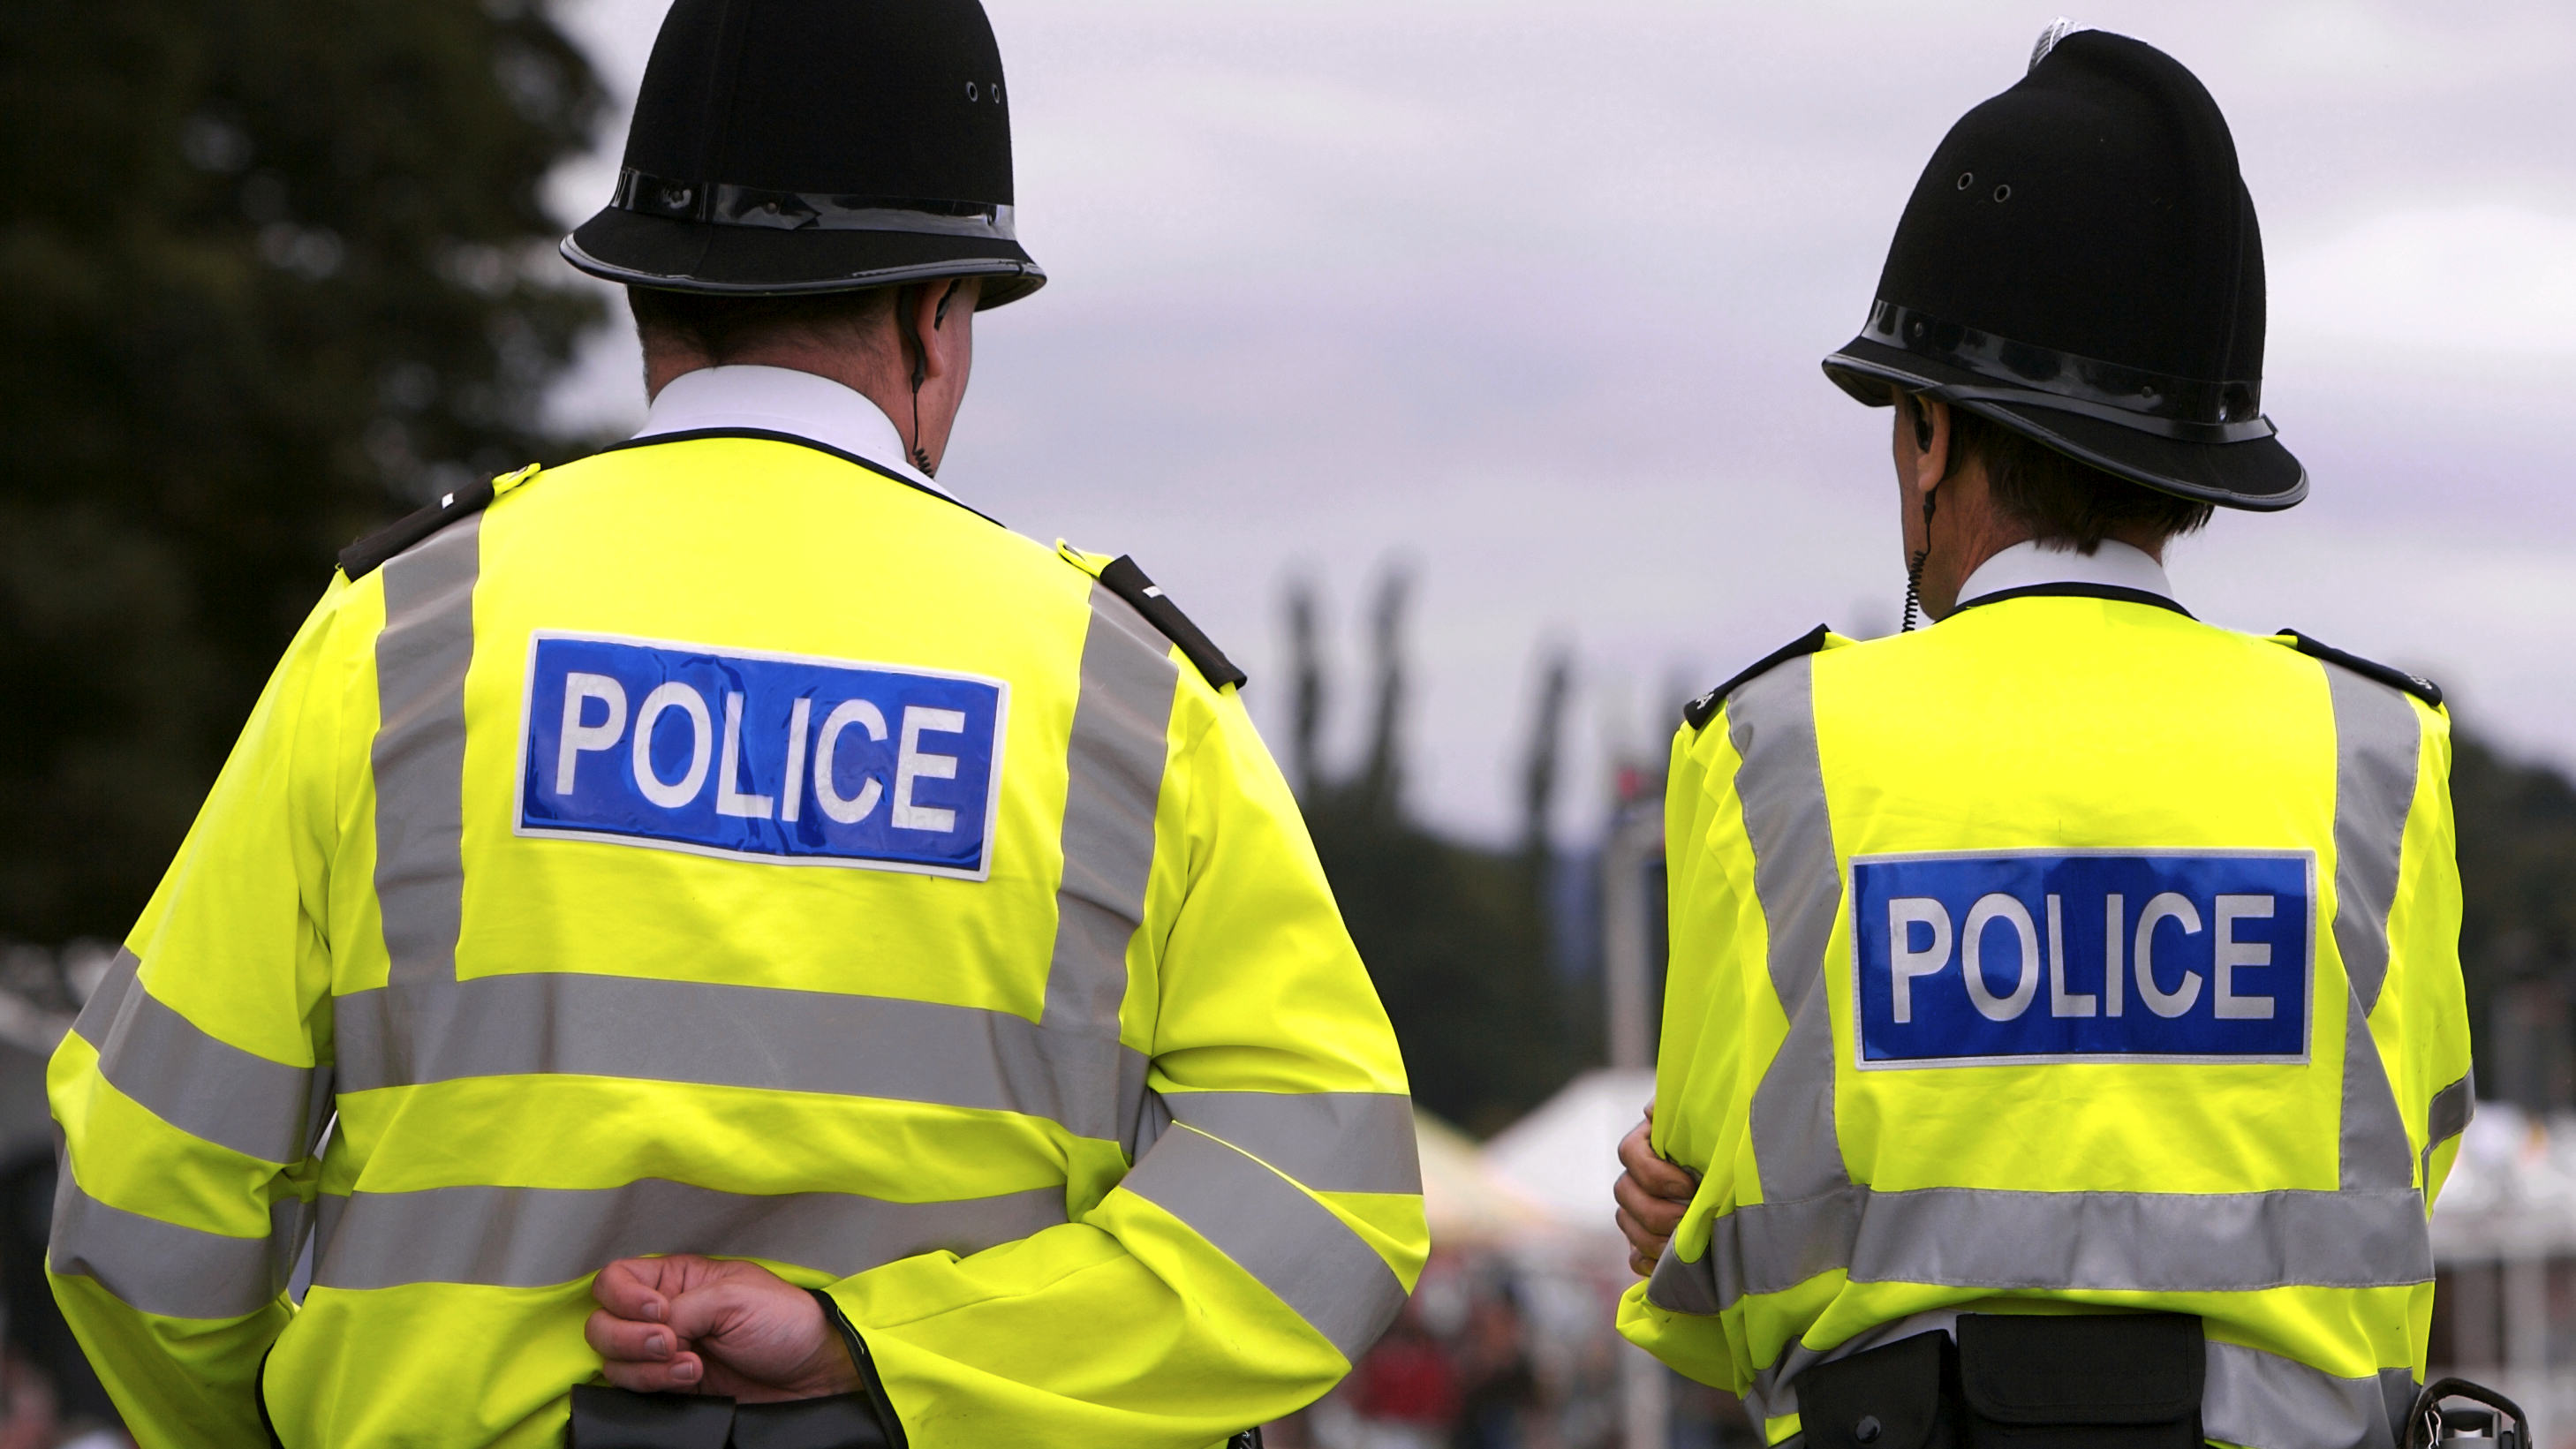 29 police g w Police To Pay Rape Victim £20,000 After Initially Threatening Her With Charges